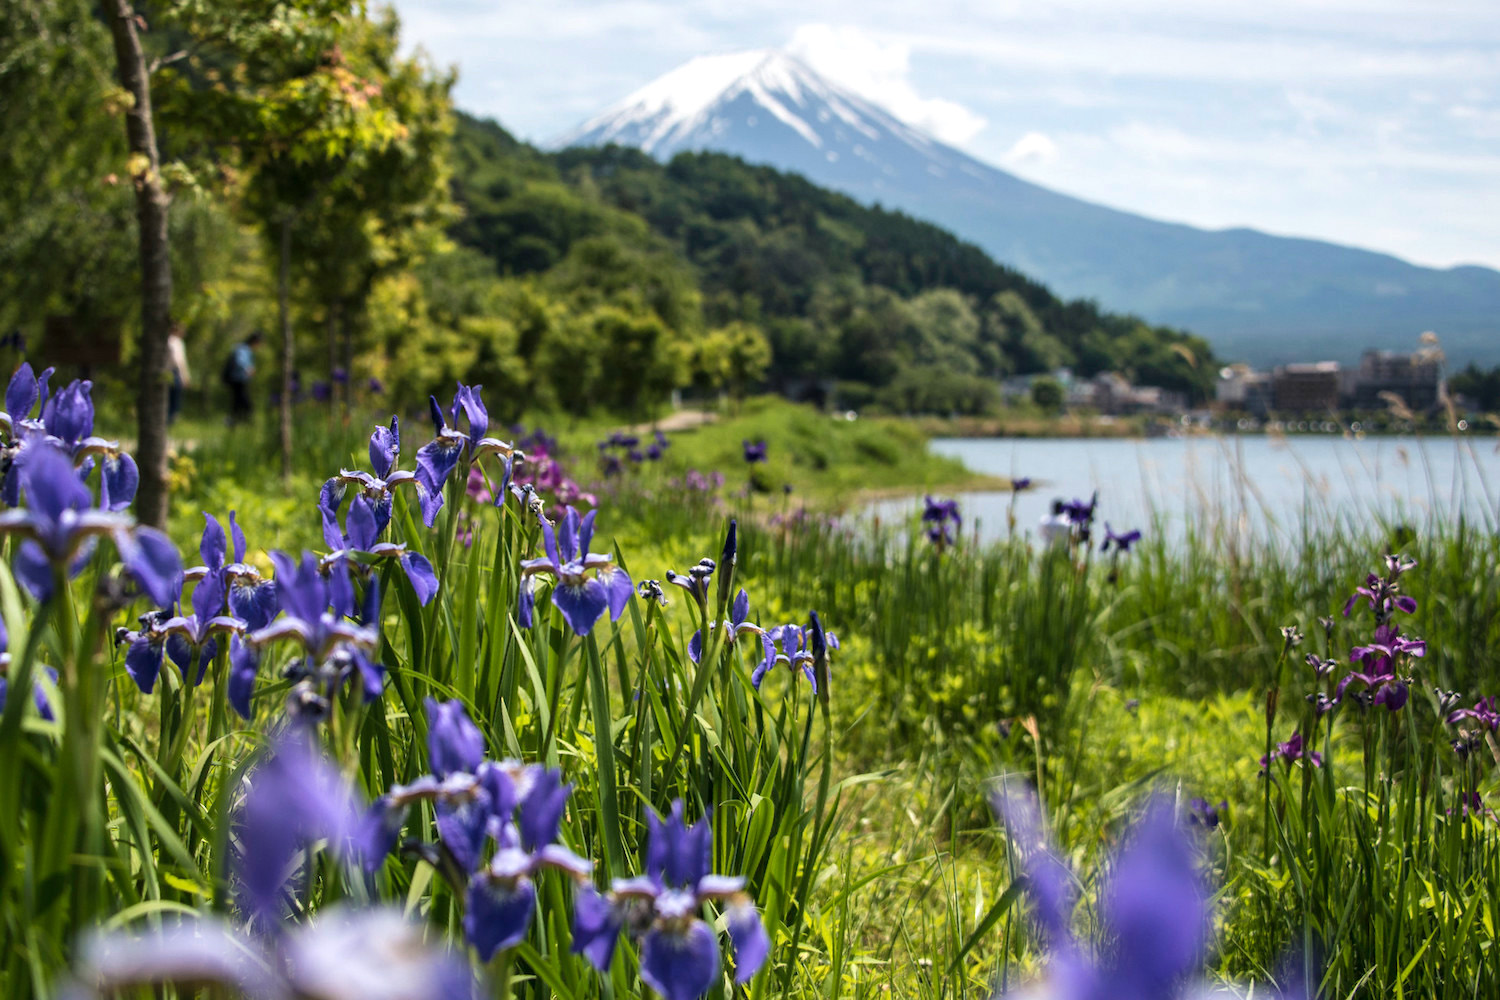 Flowers at the base of Mt. Fuji